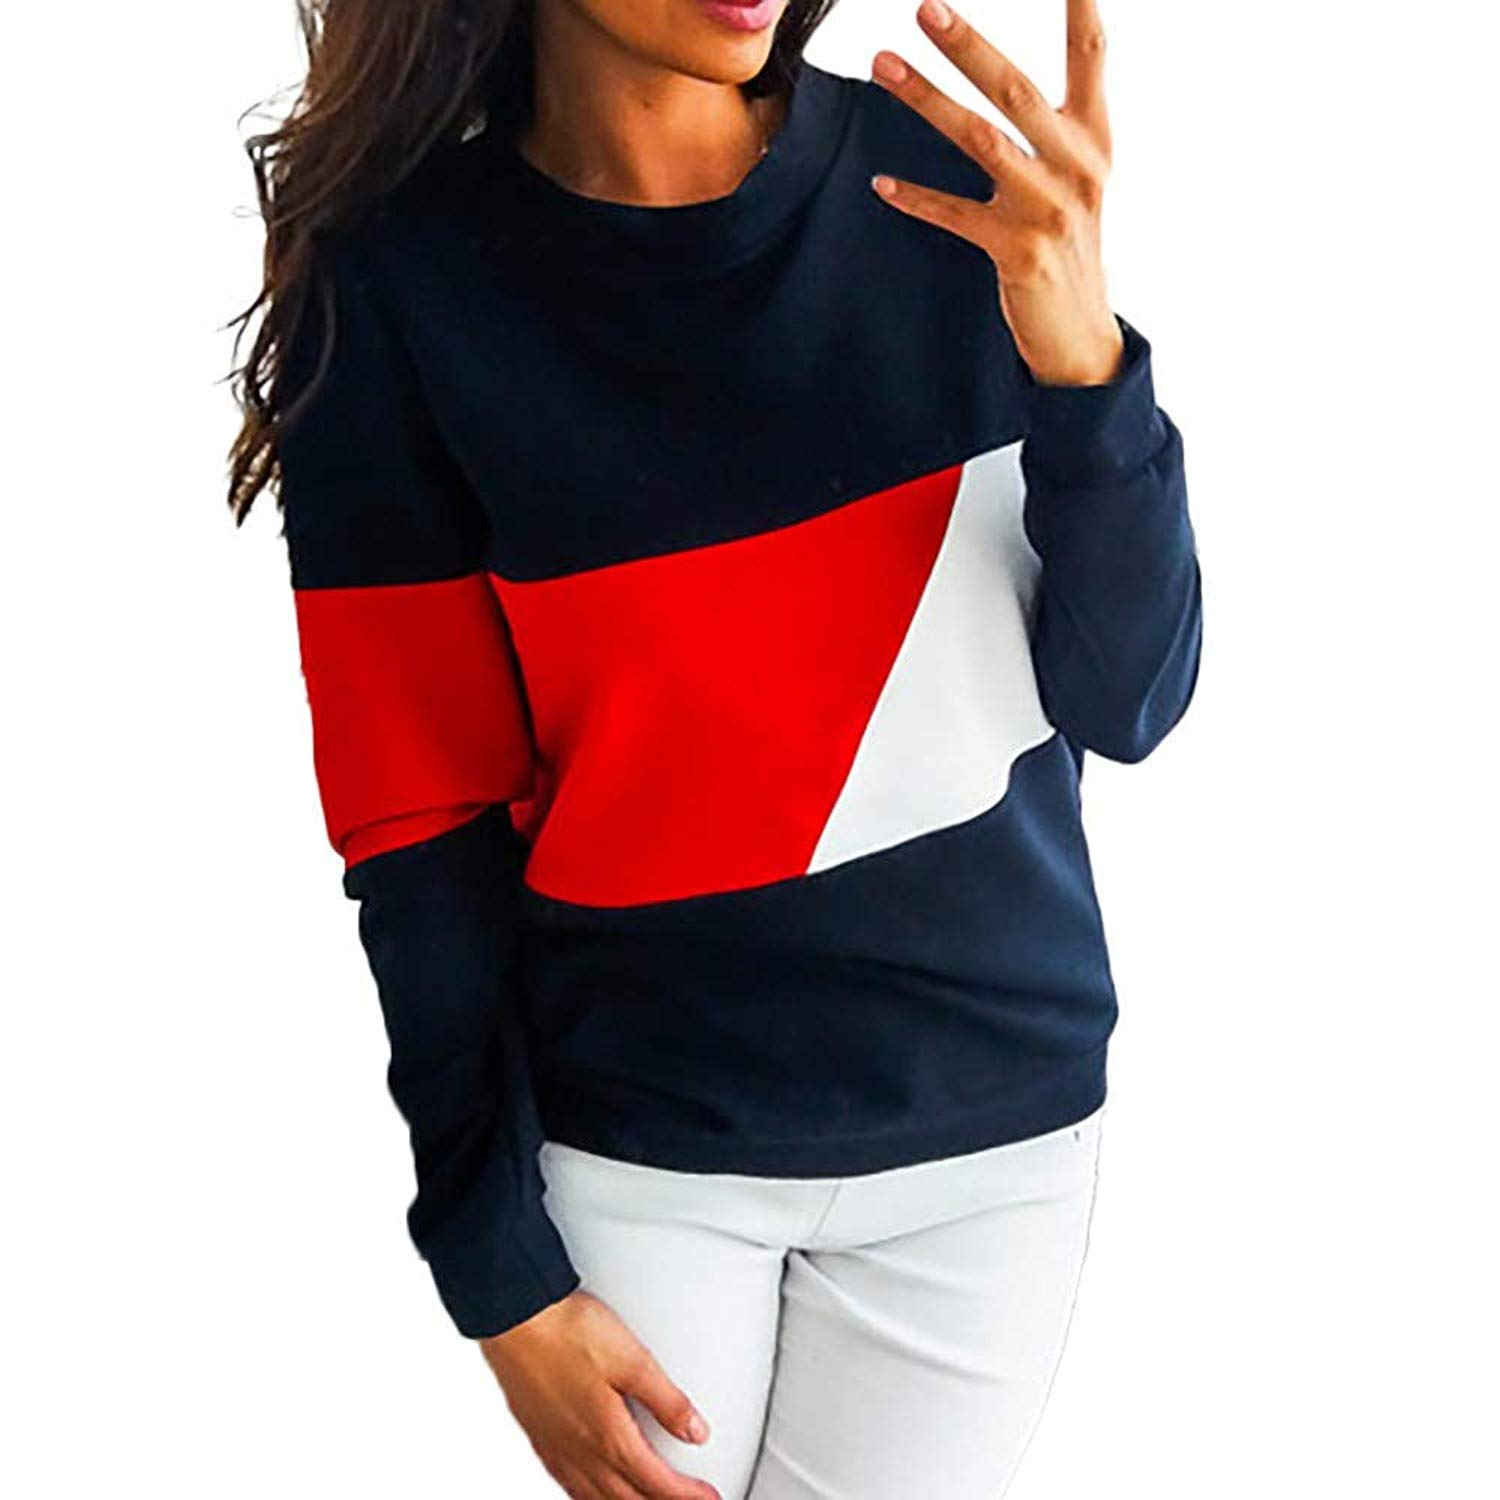 F_topbu Blouses for Women Clearance,Girls Long Sleeve Color Block Tunic Shirt Casual Loose Tops Fashion T-Shirt (Polyester)